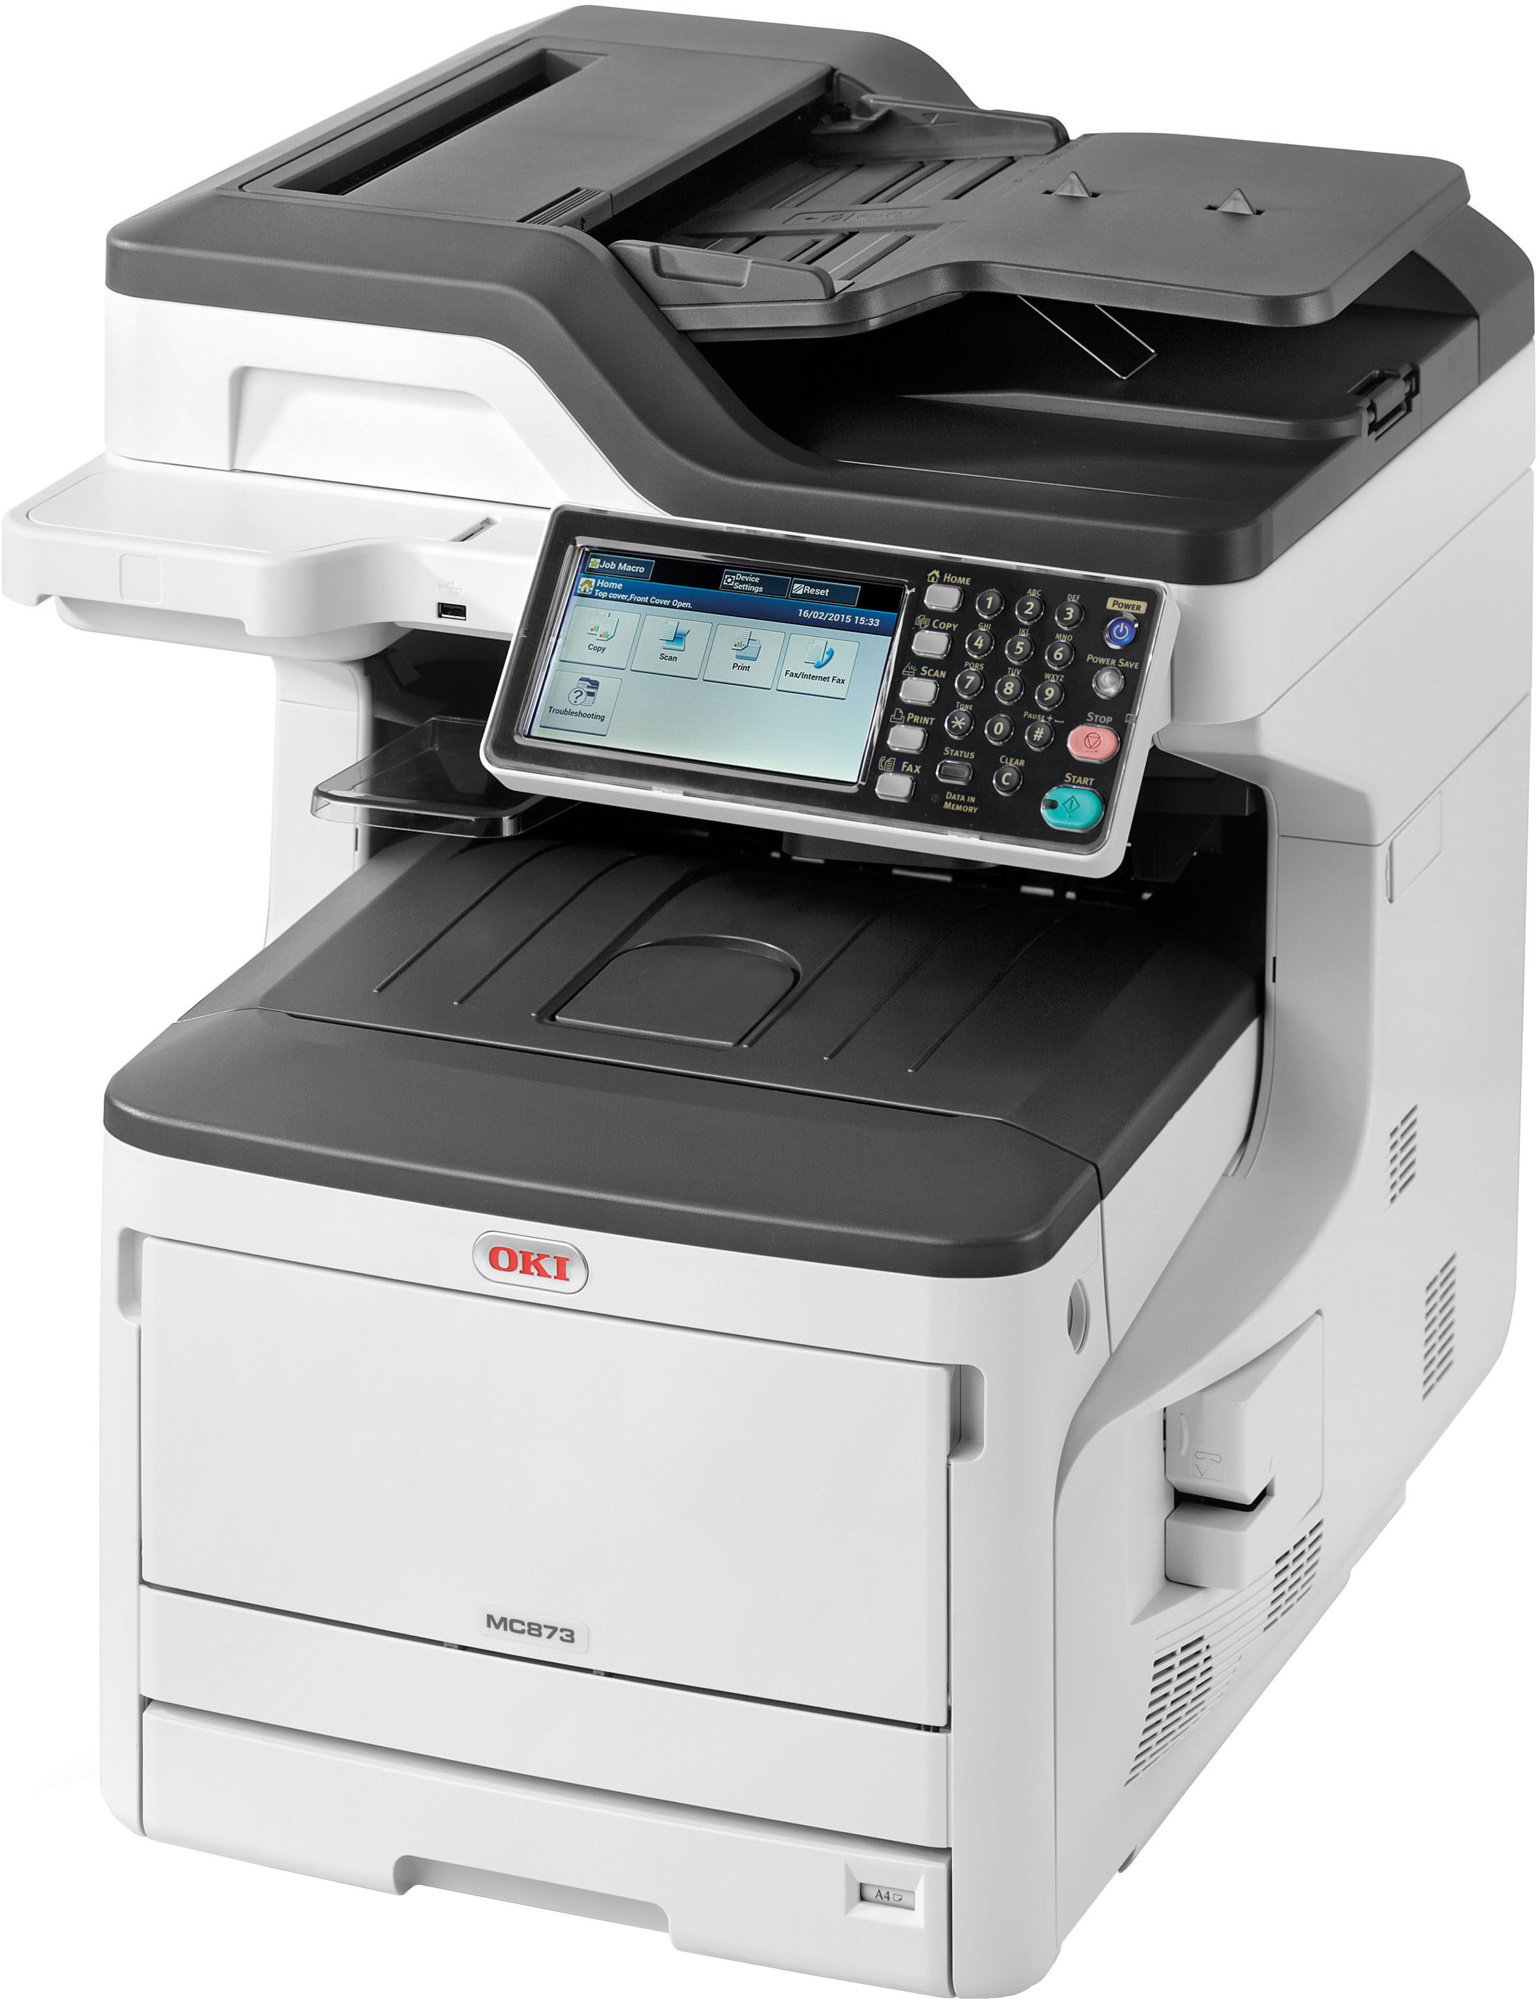 Oki MC873dn A3 35ppm ProQ2400DPI, PCL/PS,USB,LAN (Print/Scan/Copy/Fax), 250GB HDD